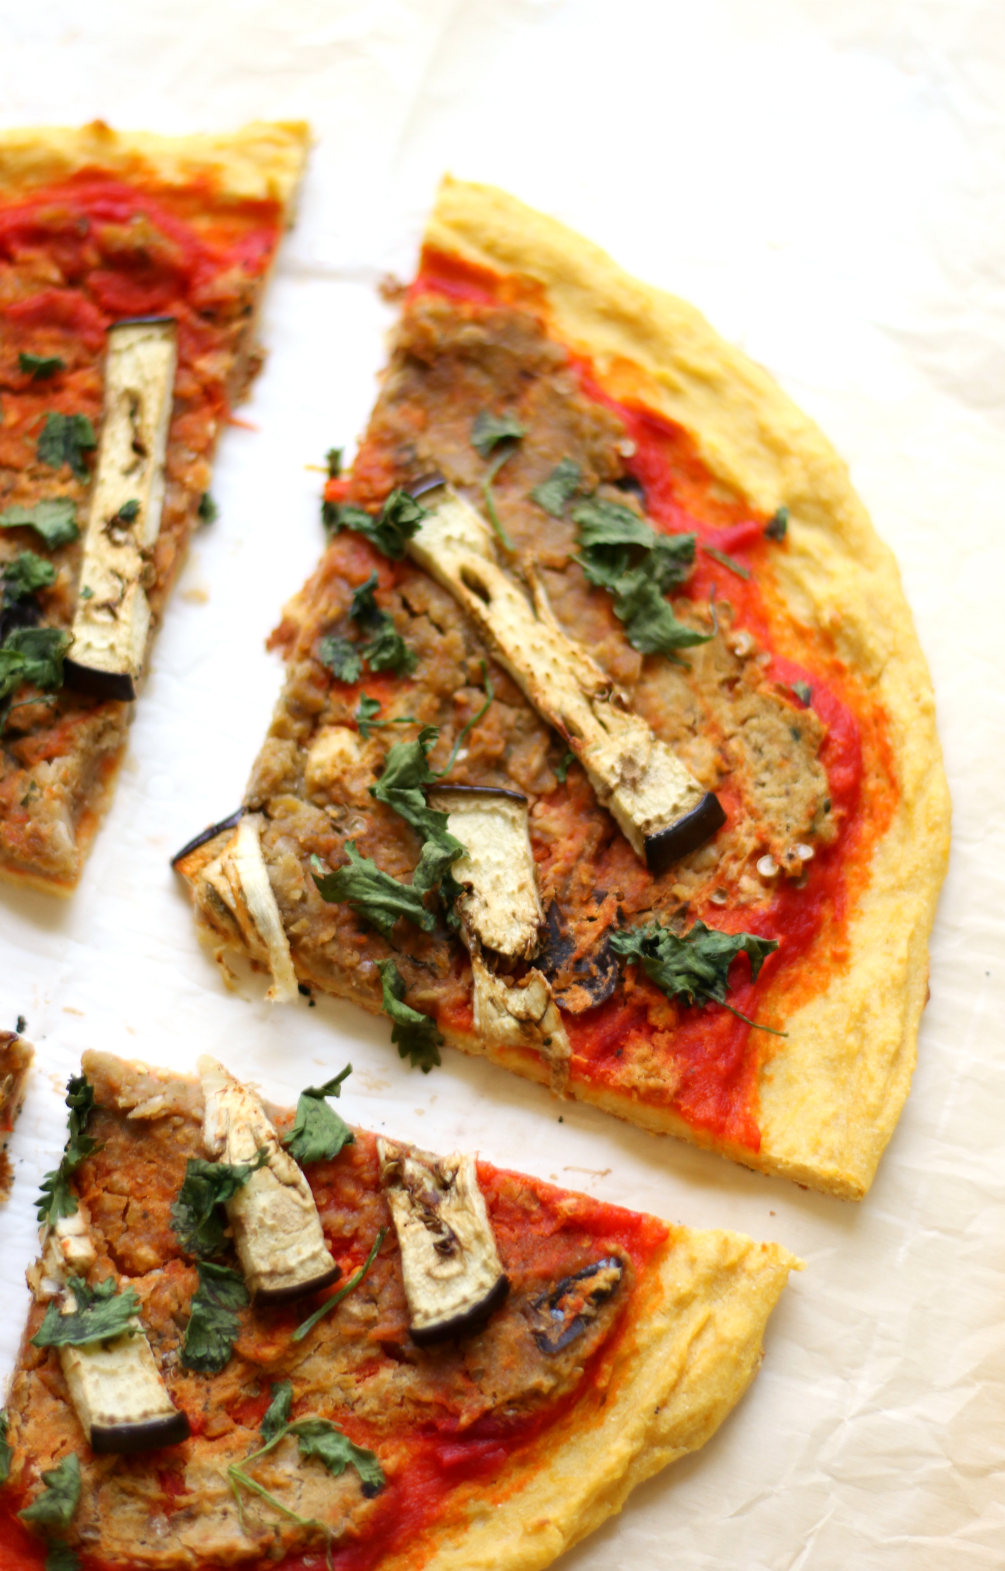 Levantine Socca Pizza | Strength and Sunshine @RebeccaGF666 Combining Levantine flavors to create a delicious gluten-free, grain-free, nut-free, vegan pizza recipe baked in a cast iron skillet! Levantine Socca Pizza is the healthy exotic twist you need to spice up pizza night!